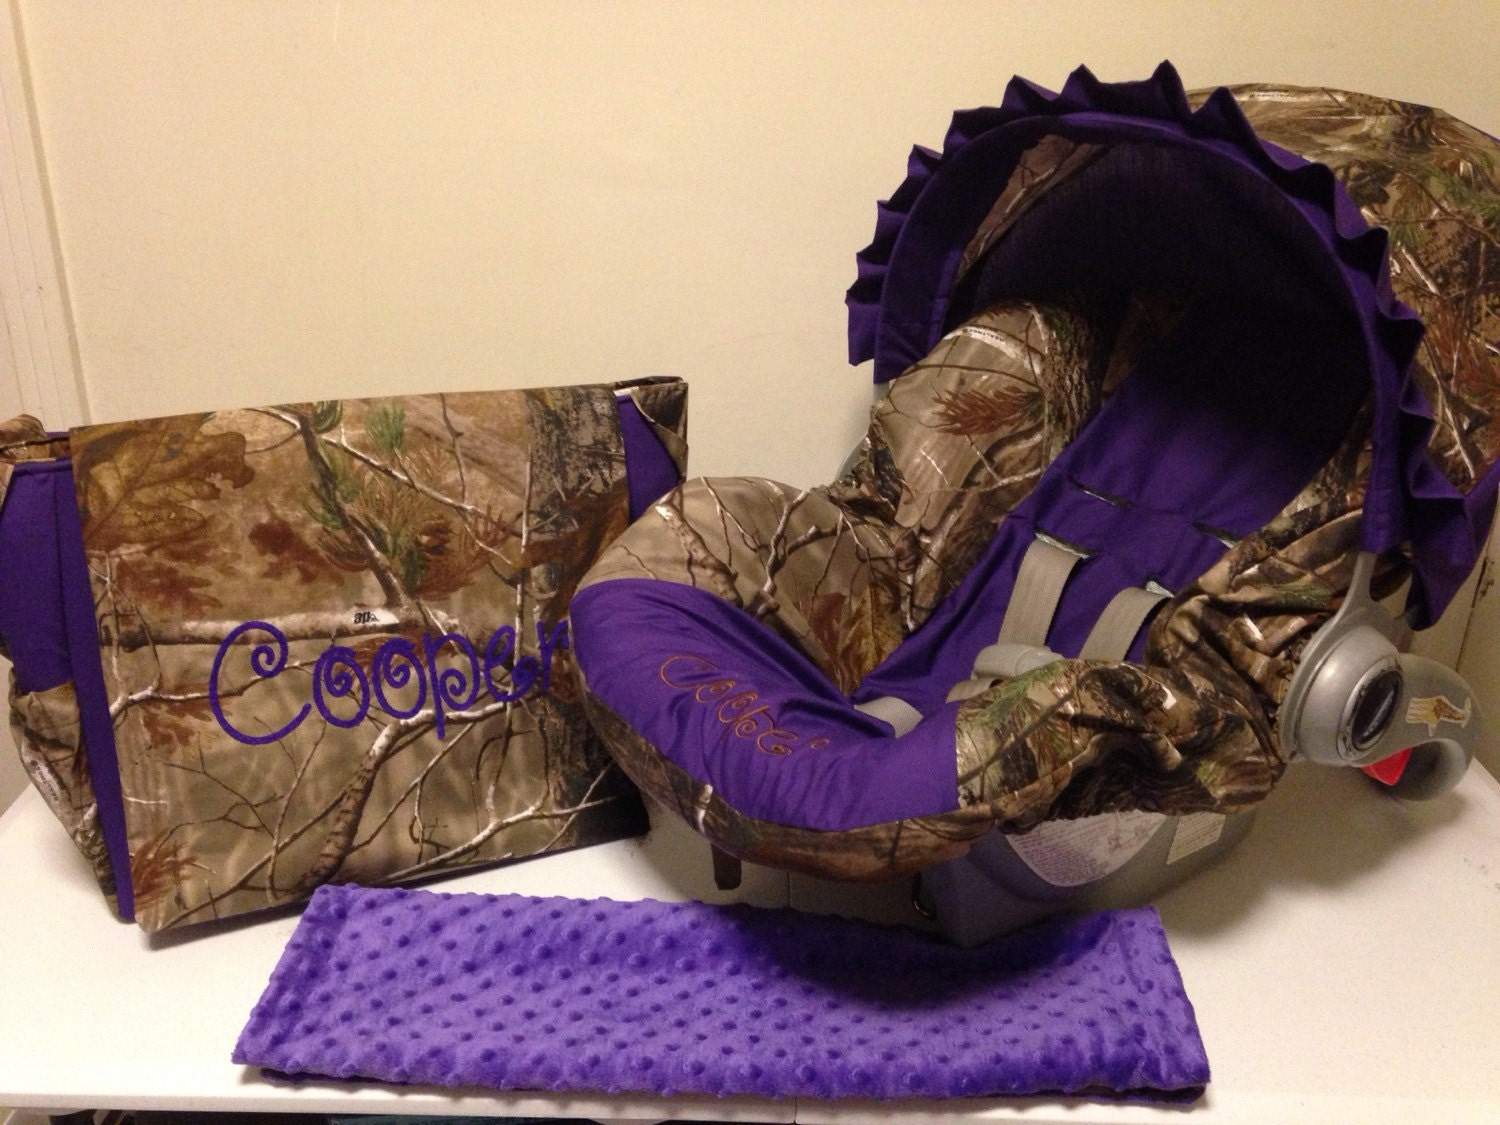 3 Piece Set Realtree Camo Fabric And Purple Infant Car Seat